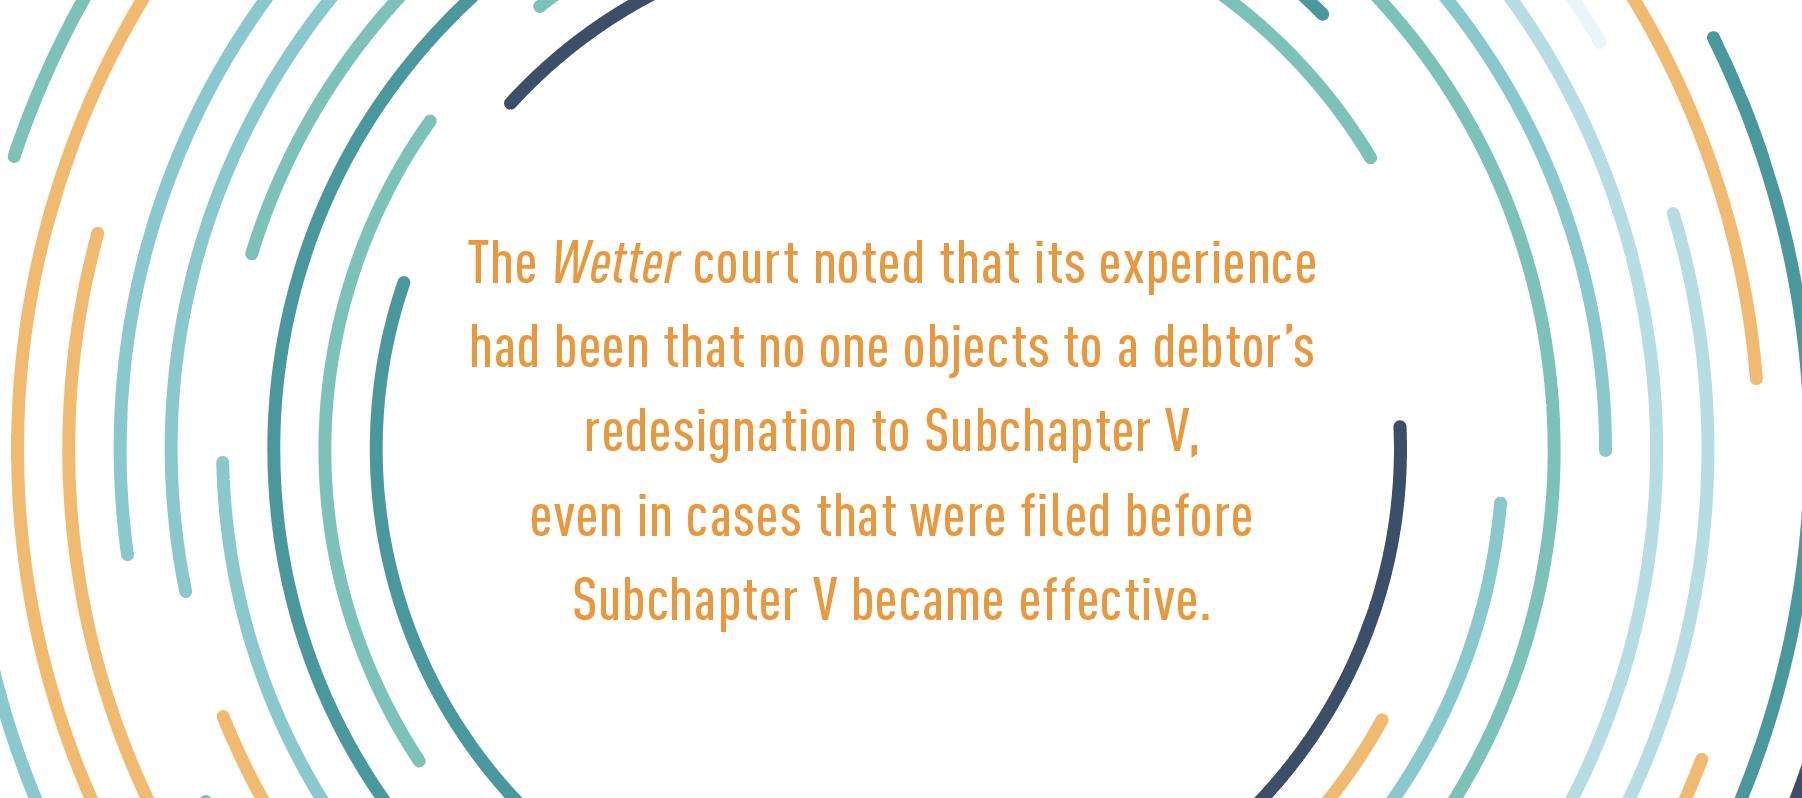 The Wetter court noted that its experience had been that no one objects to a debtor's redesignation to Subchapter V,  even in cases that were filed before Subchapter V became effective.